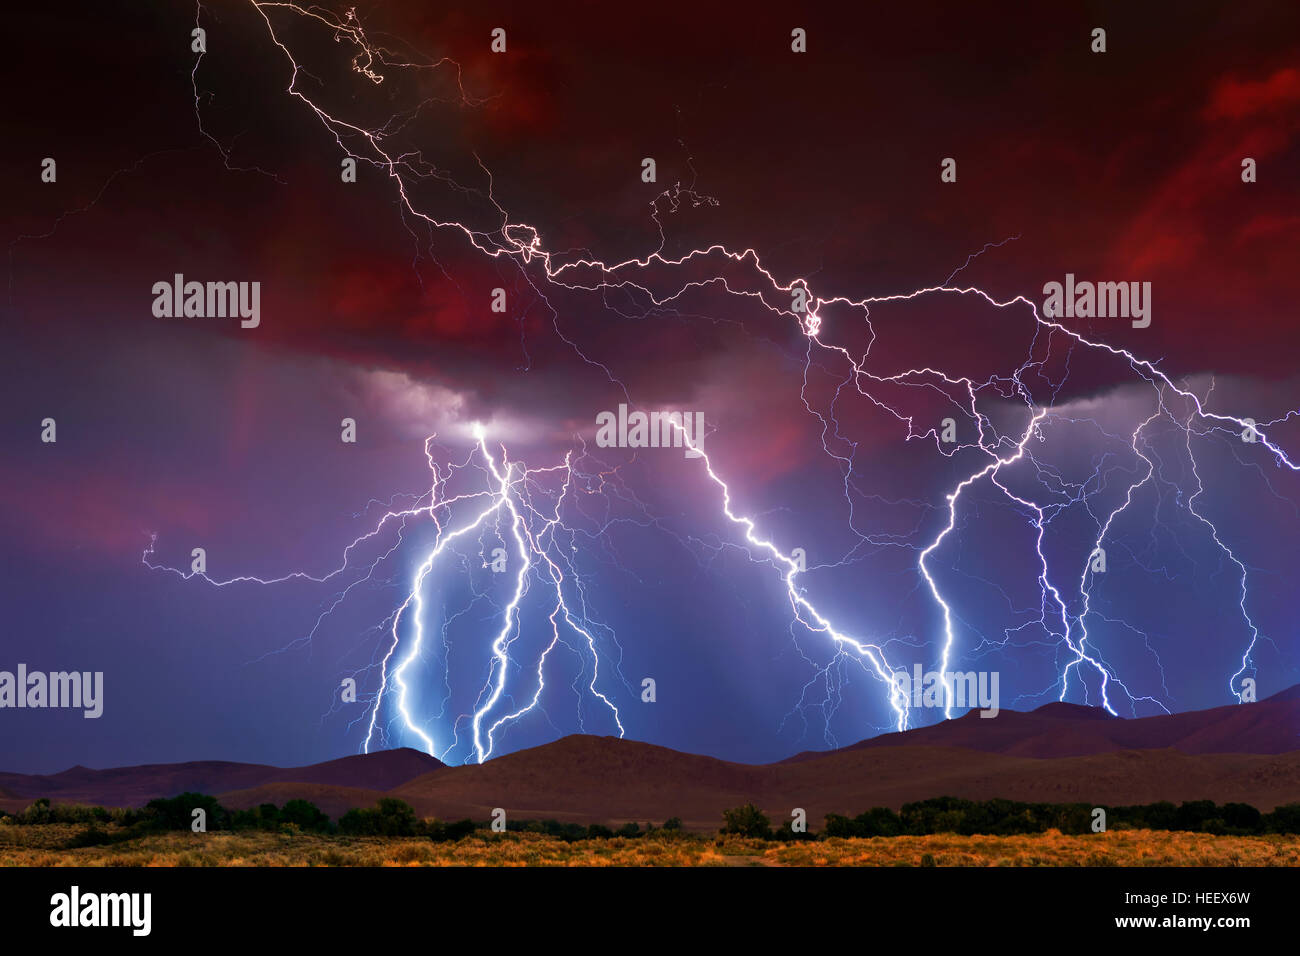 Stormy Skies with multiple lightning strikes - Stock Image